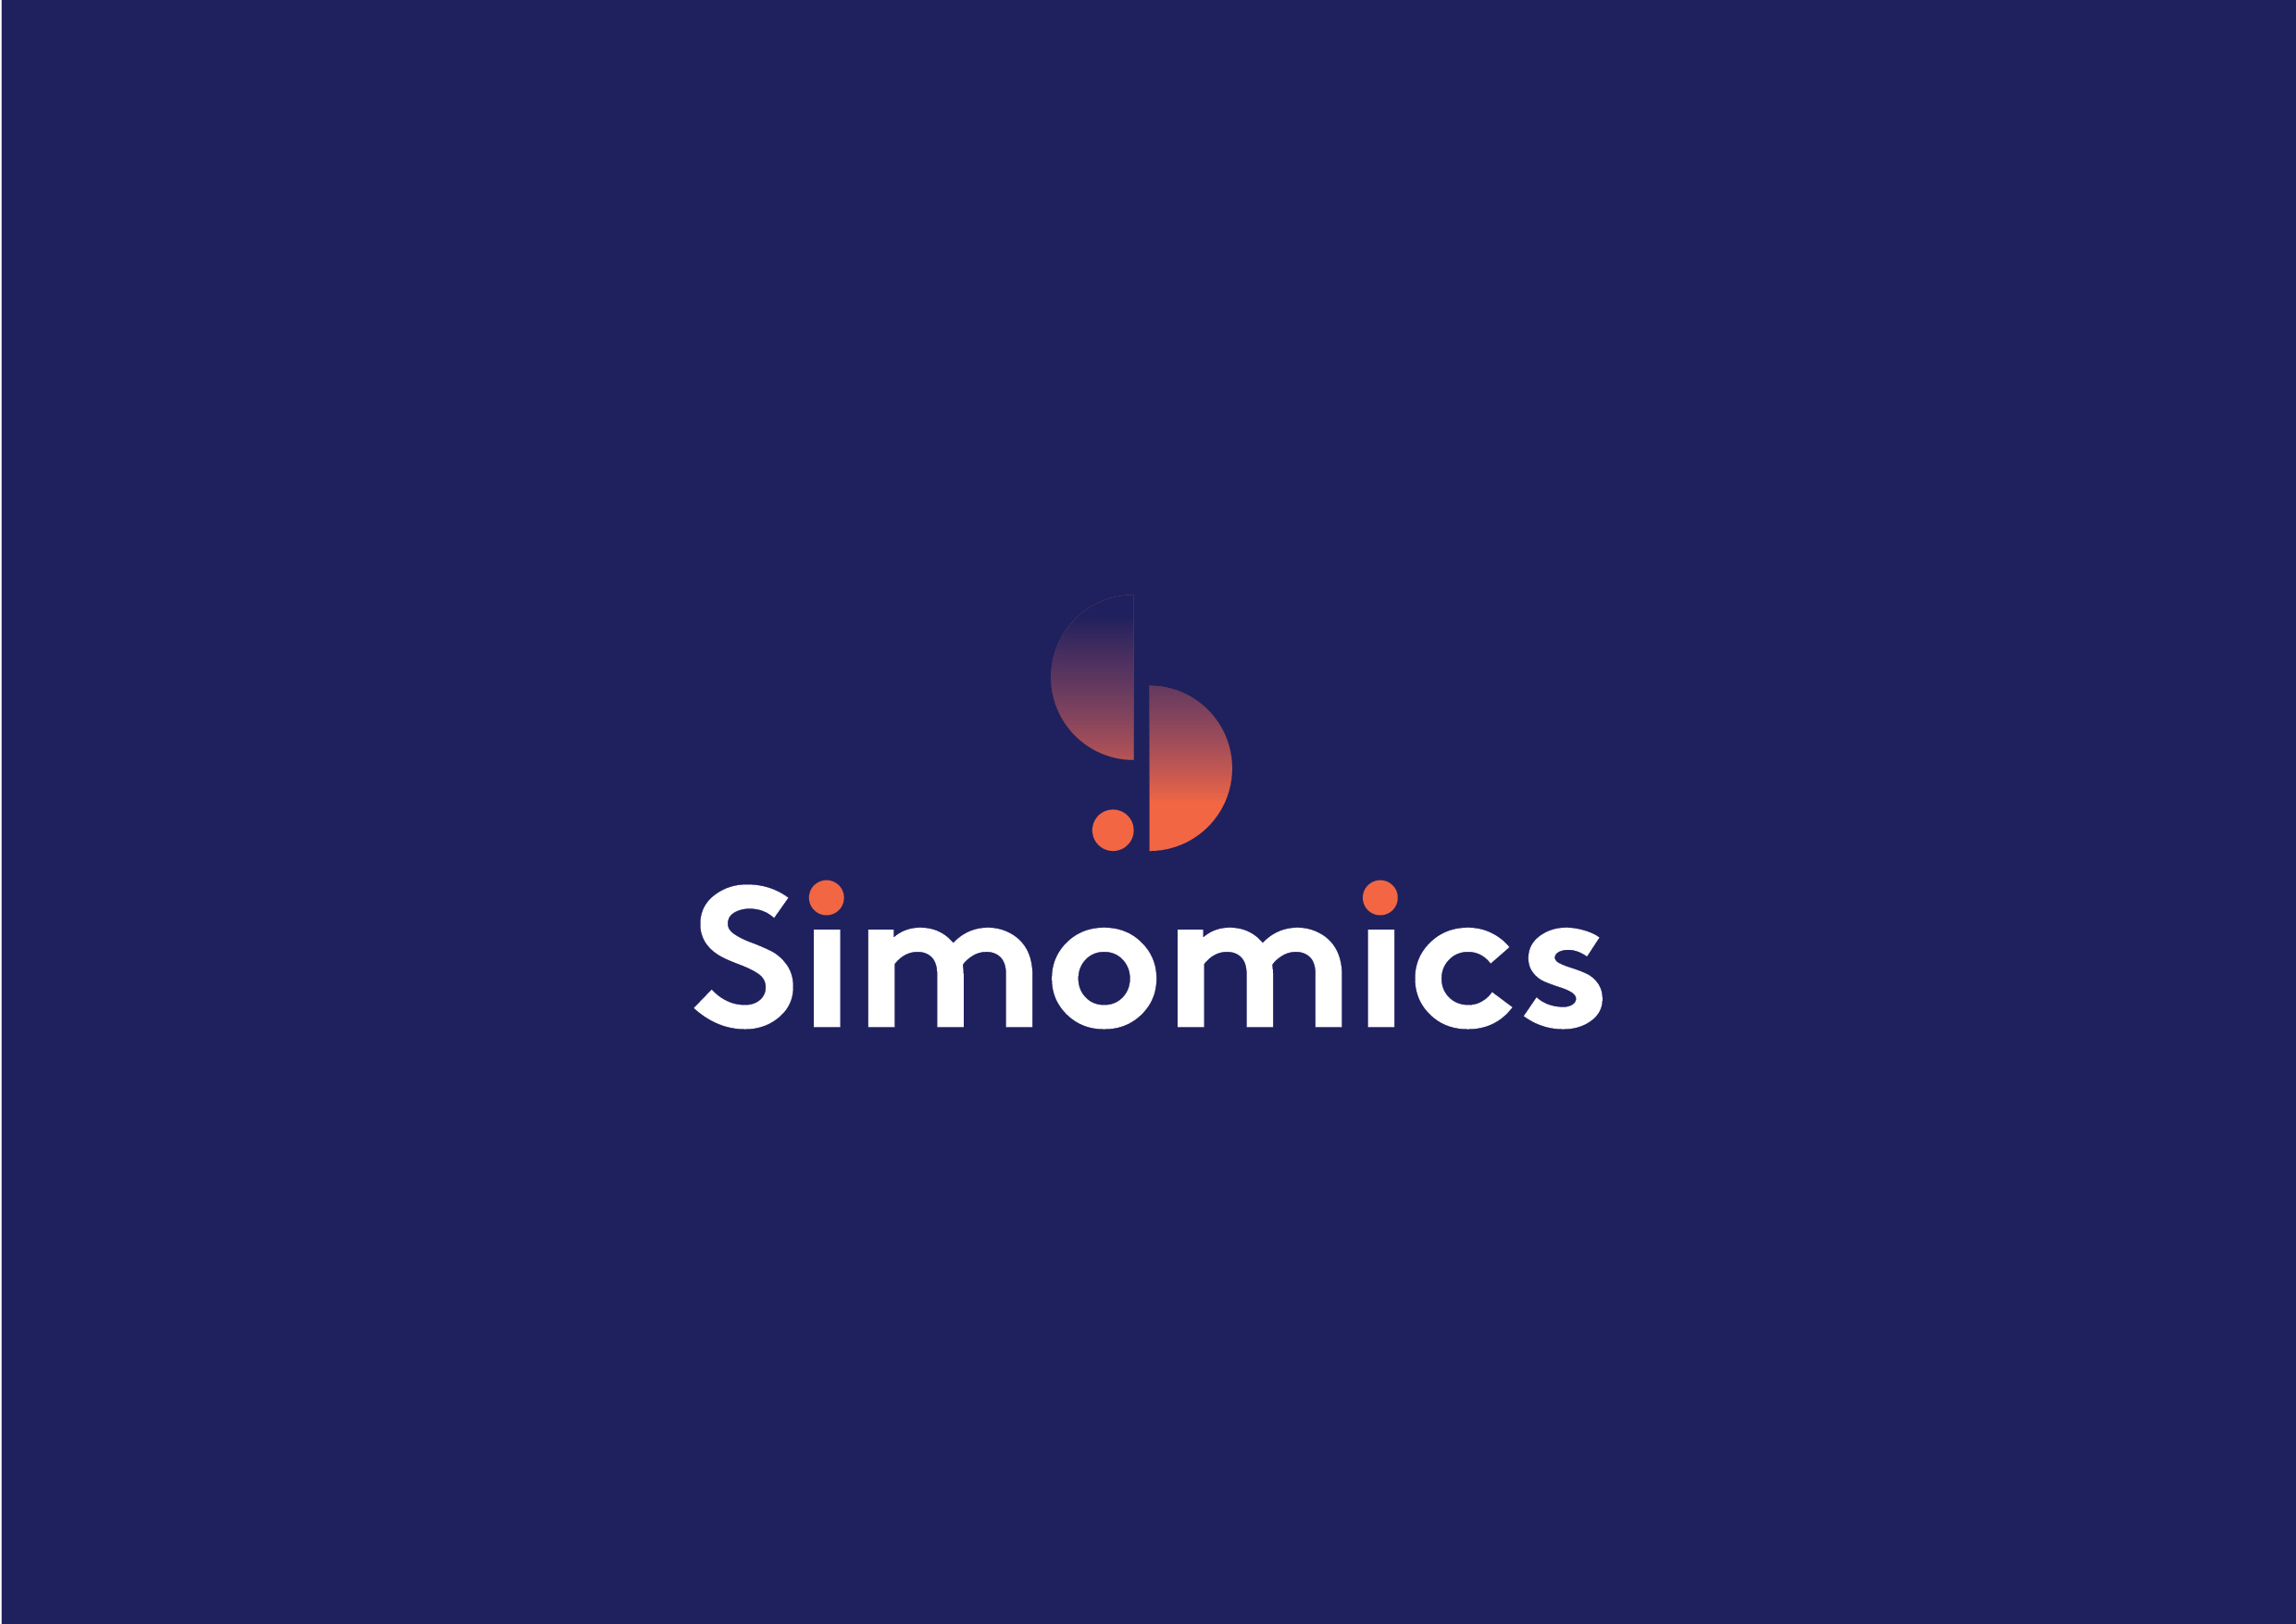 Based in York since 2014, Simomics is an ethics-led software technology SME, driven by a strong mission and purpose to promote corporate environmental responsibility, and the replacement, reduction, and refinement of the use of animals for scientific purposes through in-silico modelling. I led the Simomics team through a re-brand and positioning project to help them reach their growth goals.